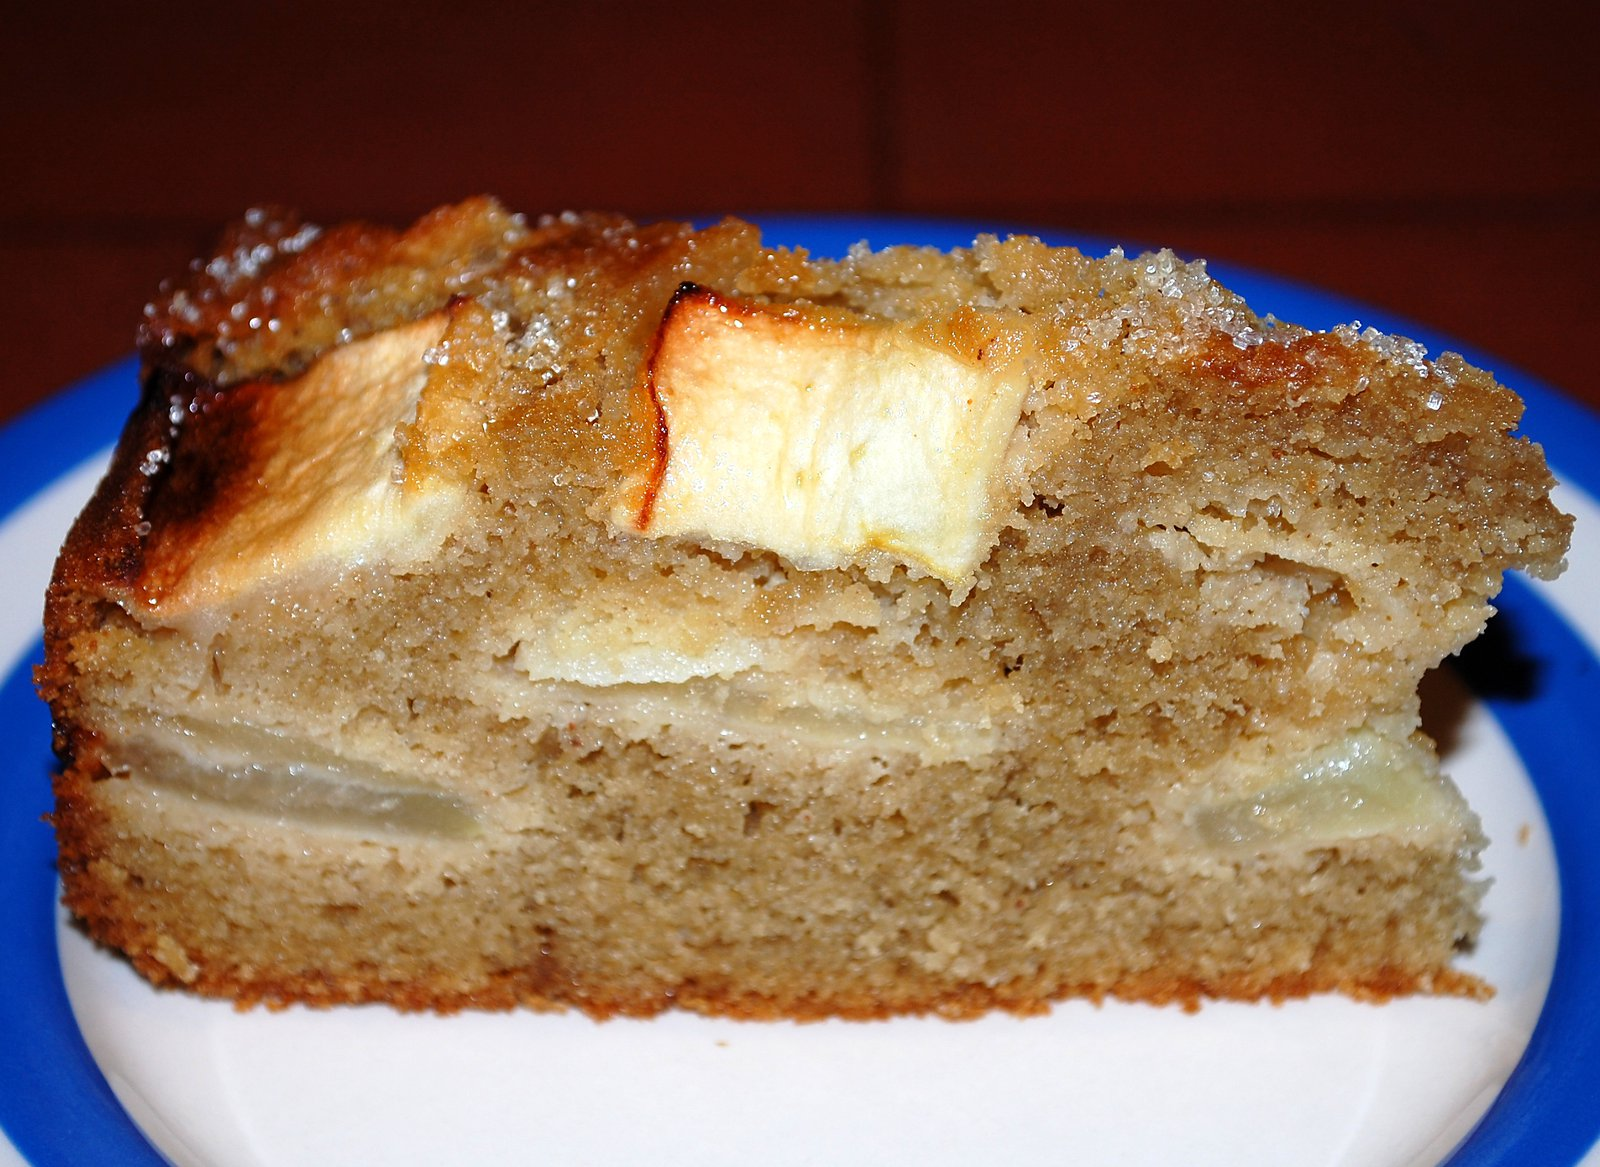 A Slice Of Rich Apple Cake